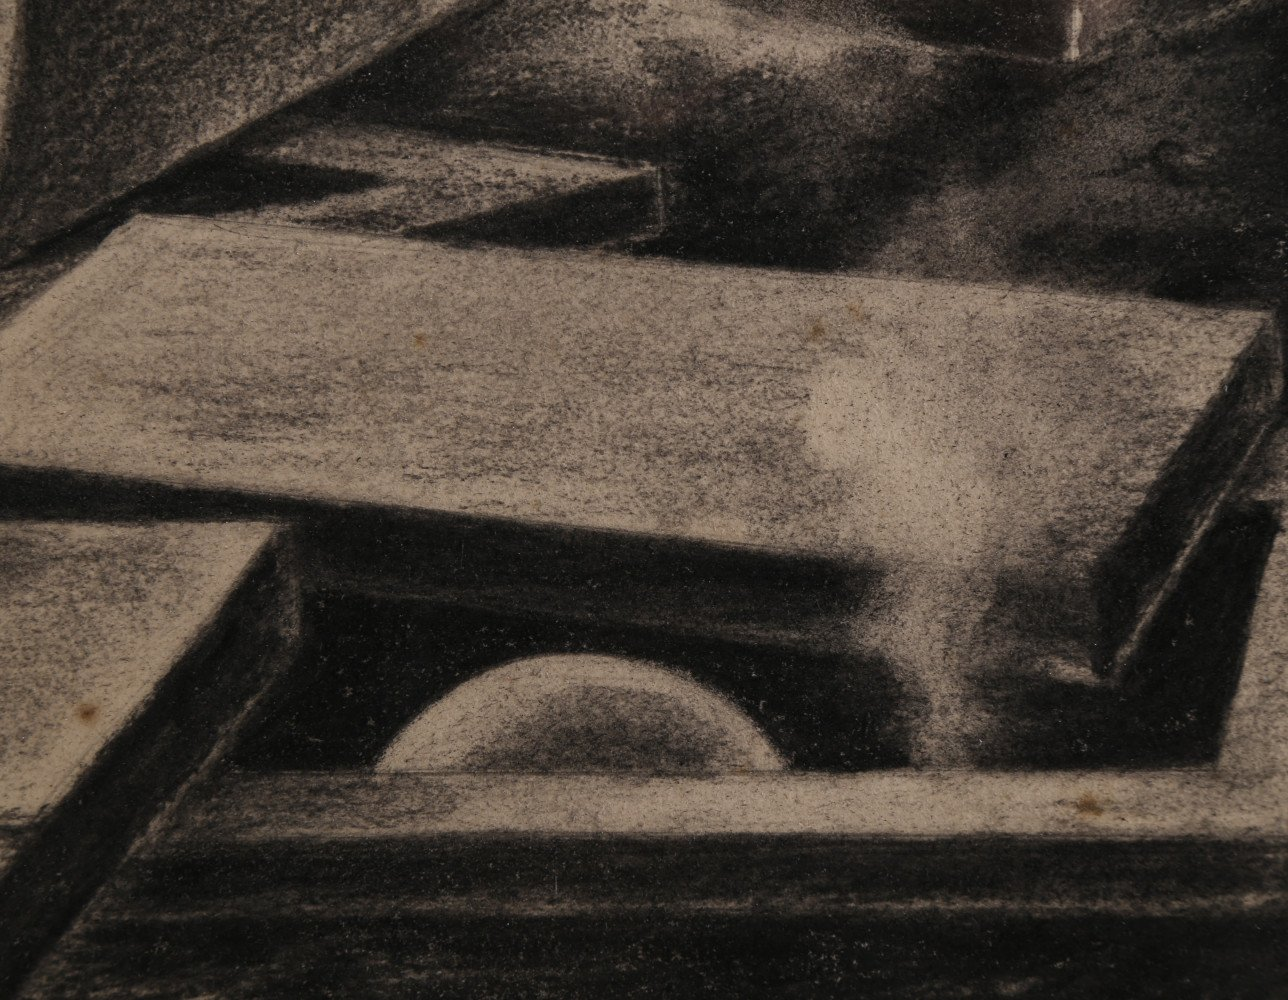 Abstract Charcoal on Paper Drawing: